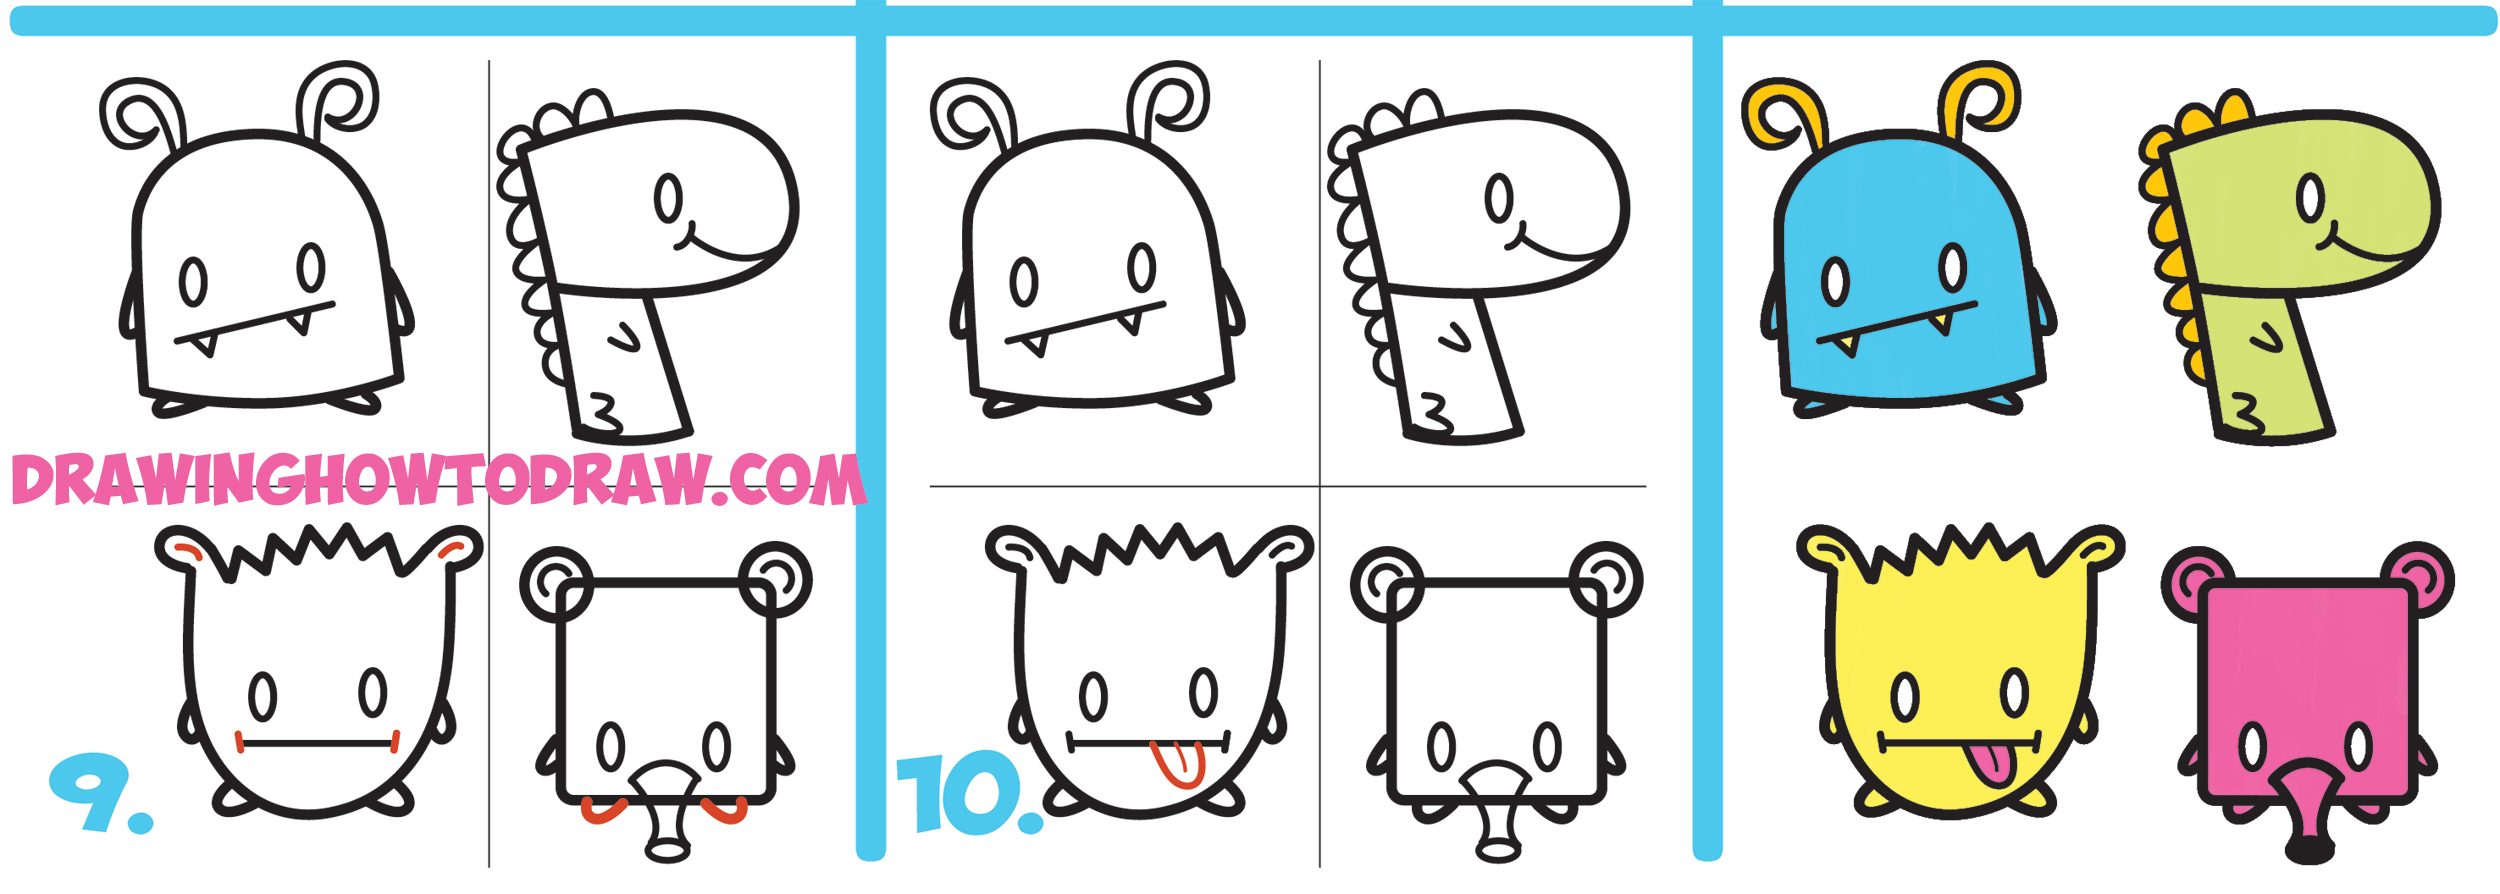 2500x894 Shapes Drawing For Kids How To Draw Cute Cartoon Monsters